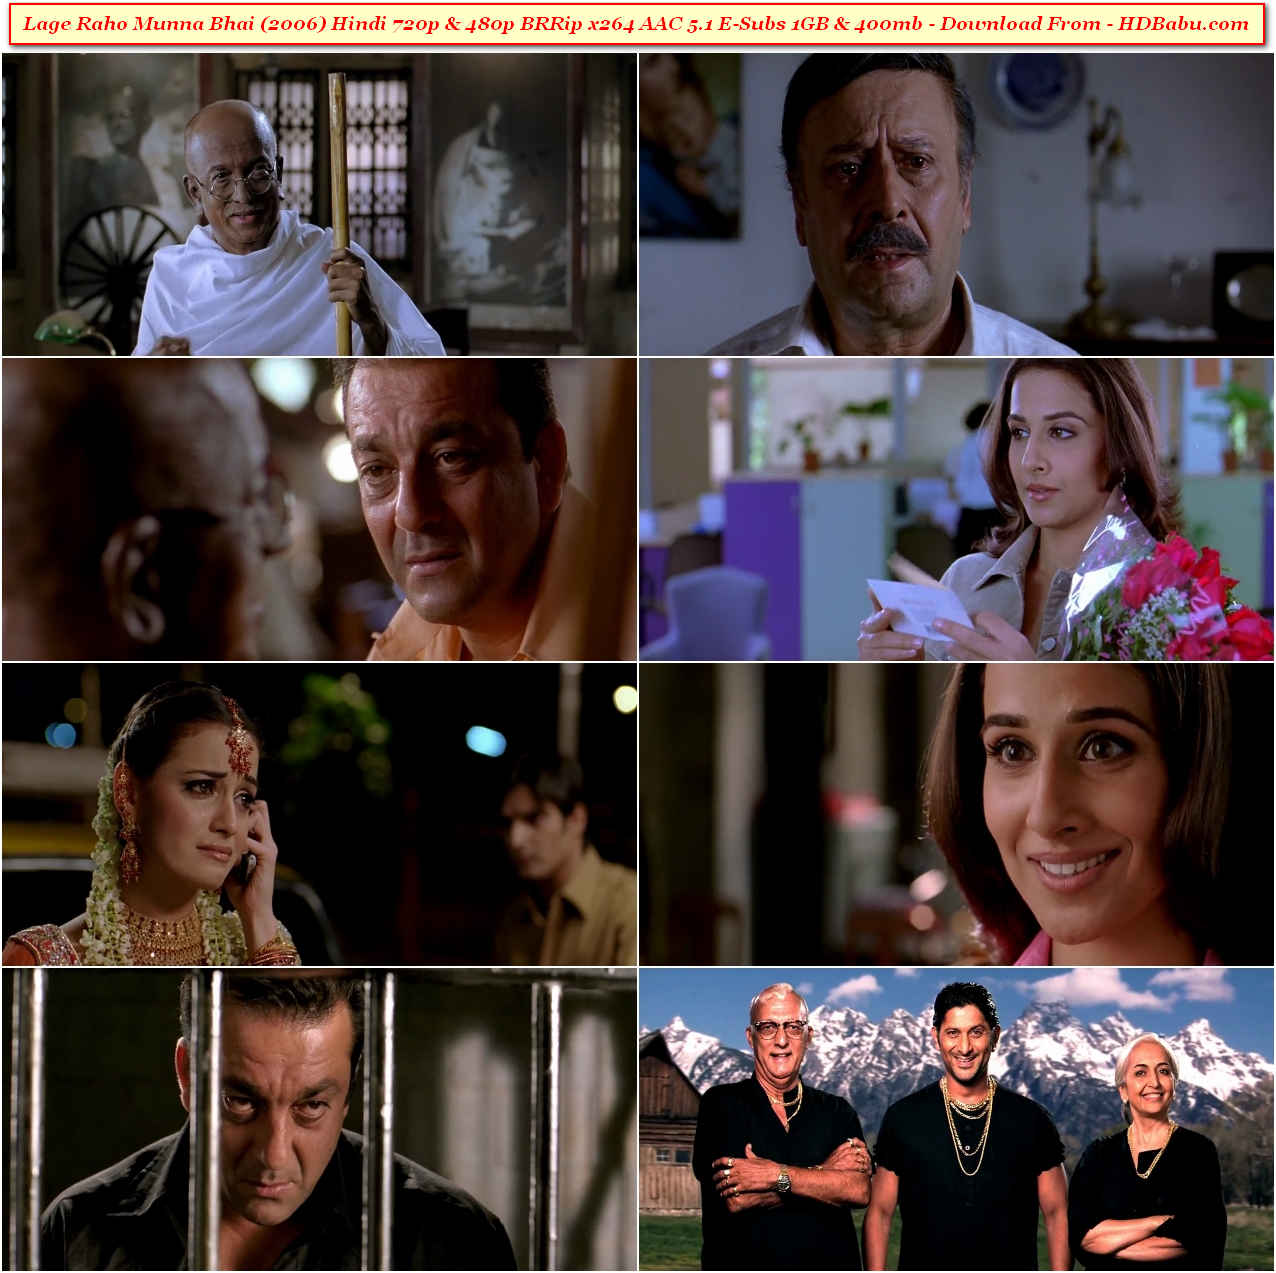 Lage Raho Munna Bhai Full Movie Download